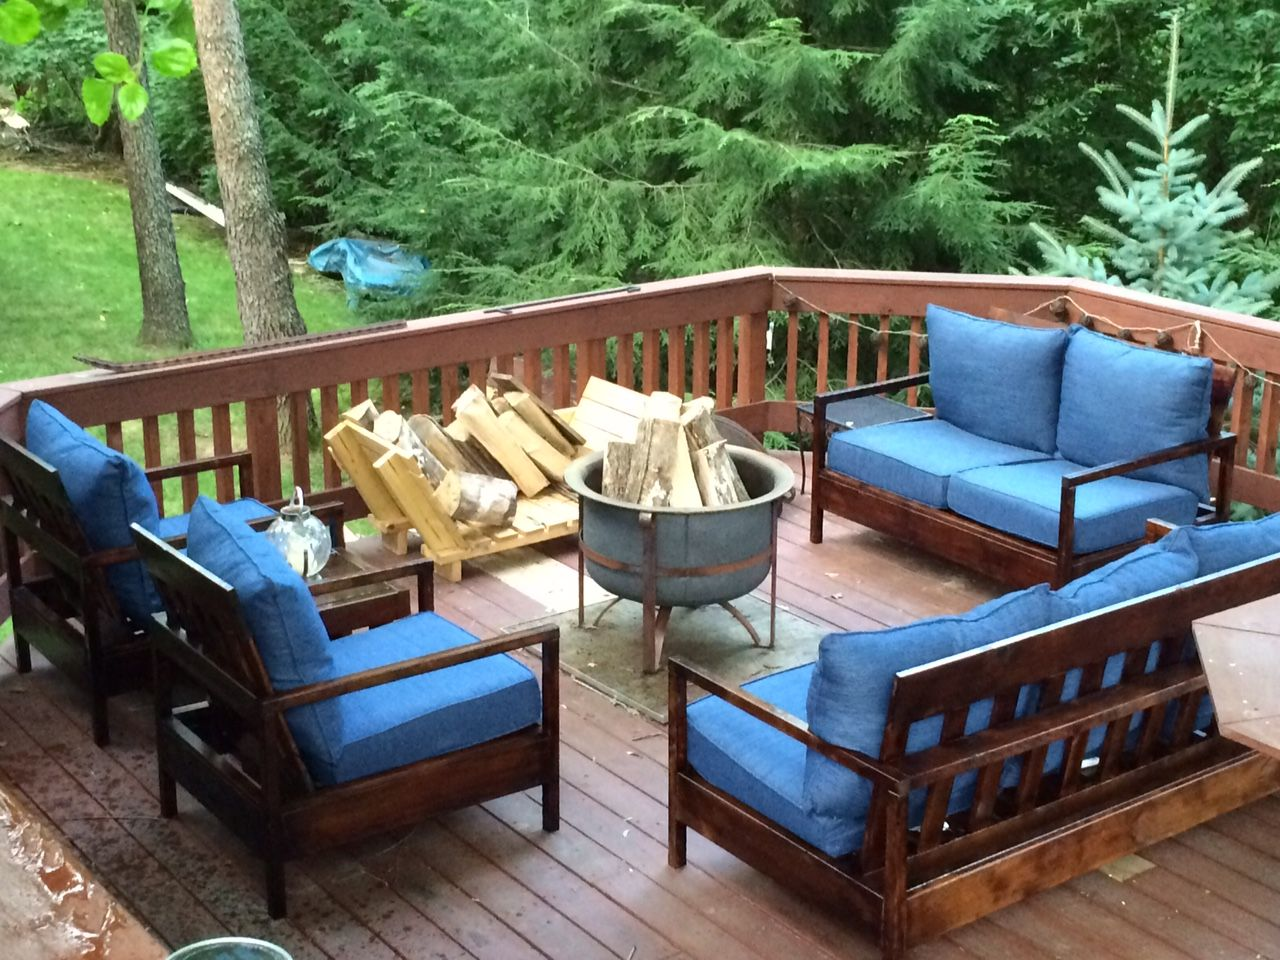 Furniture for the Deck | Do It Yourself Home Projects from ...